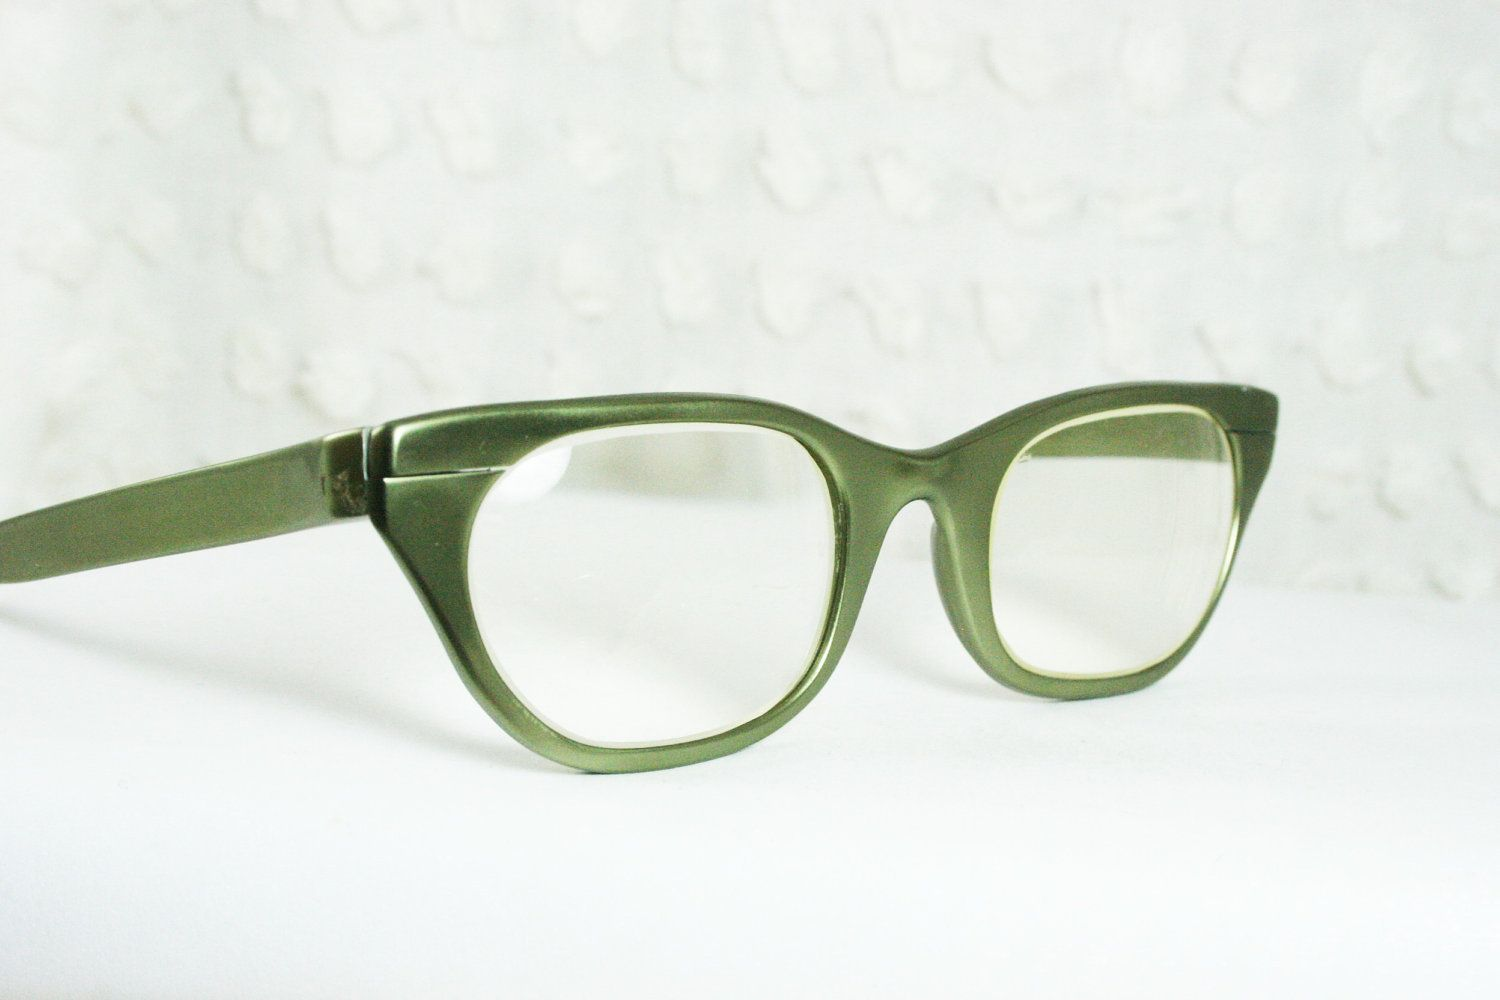 Glasses Frames Green : cat eye glasses image Tura 50s Cat Eye Glasses 1950s ...